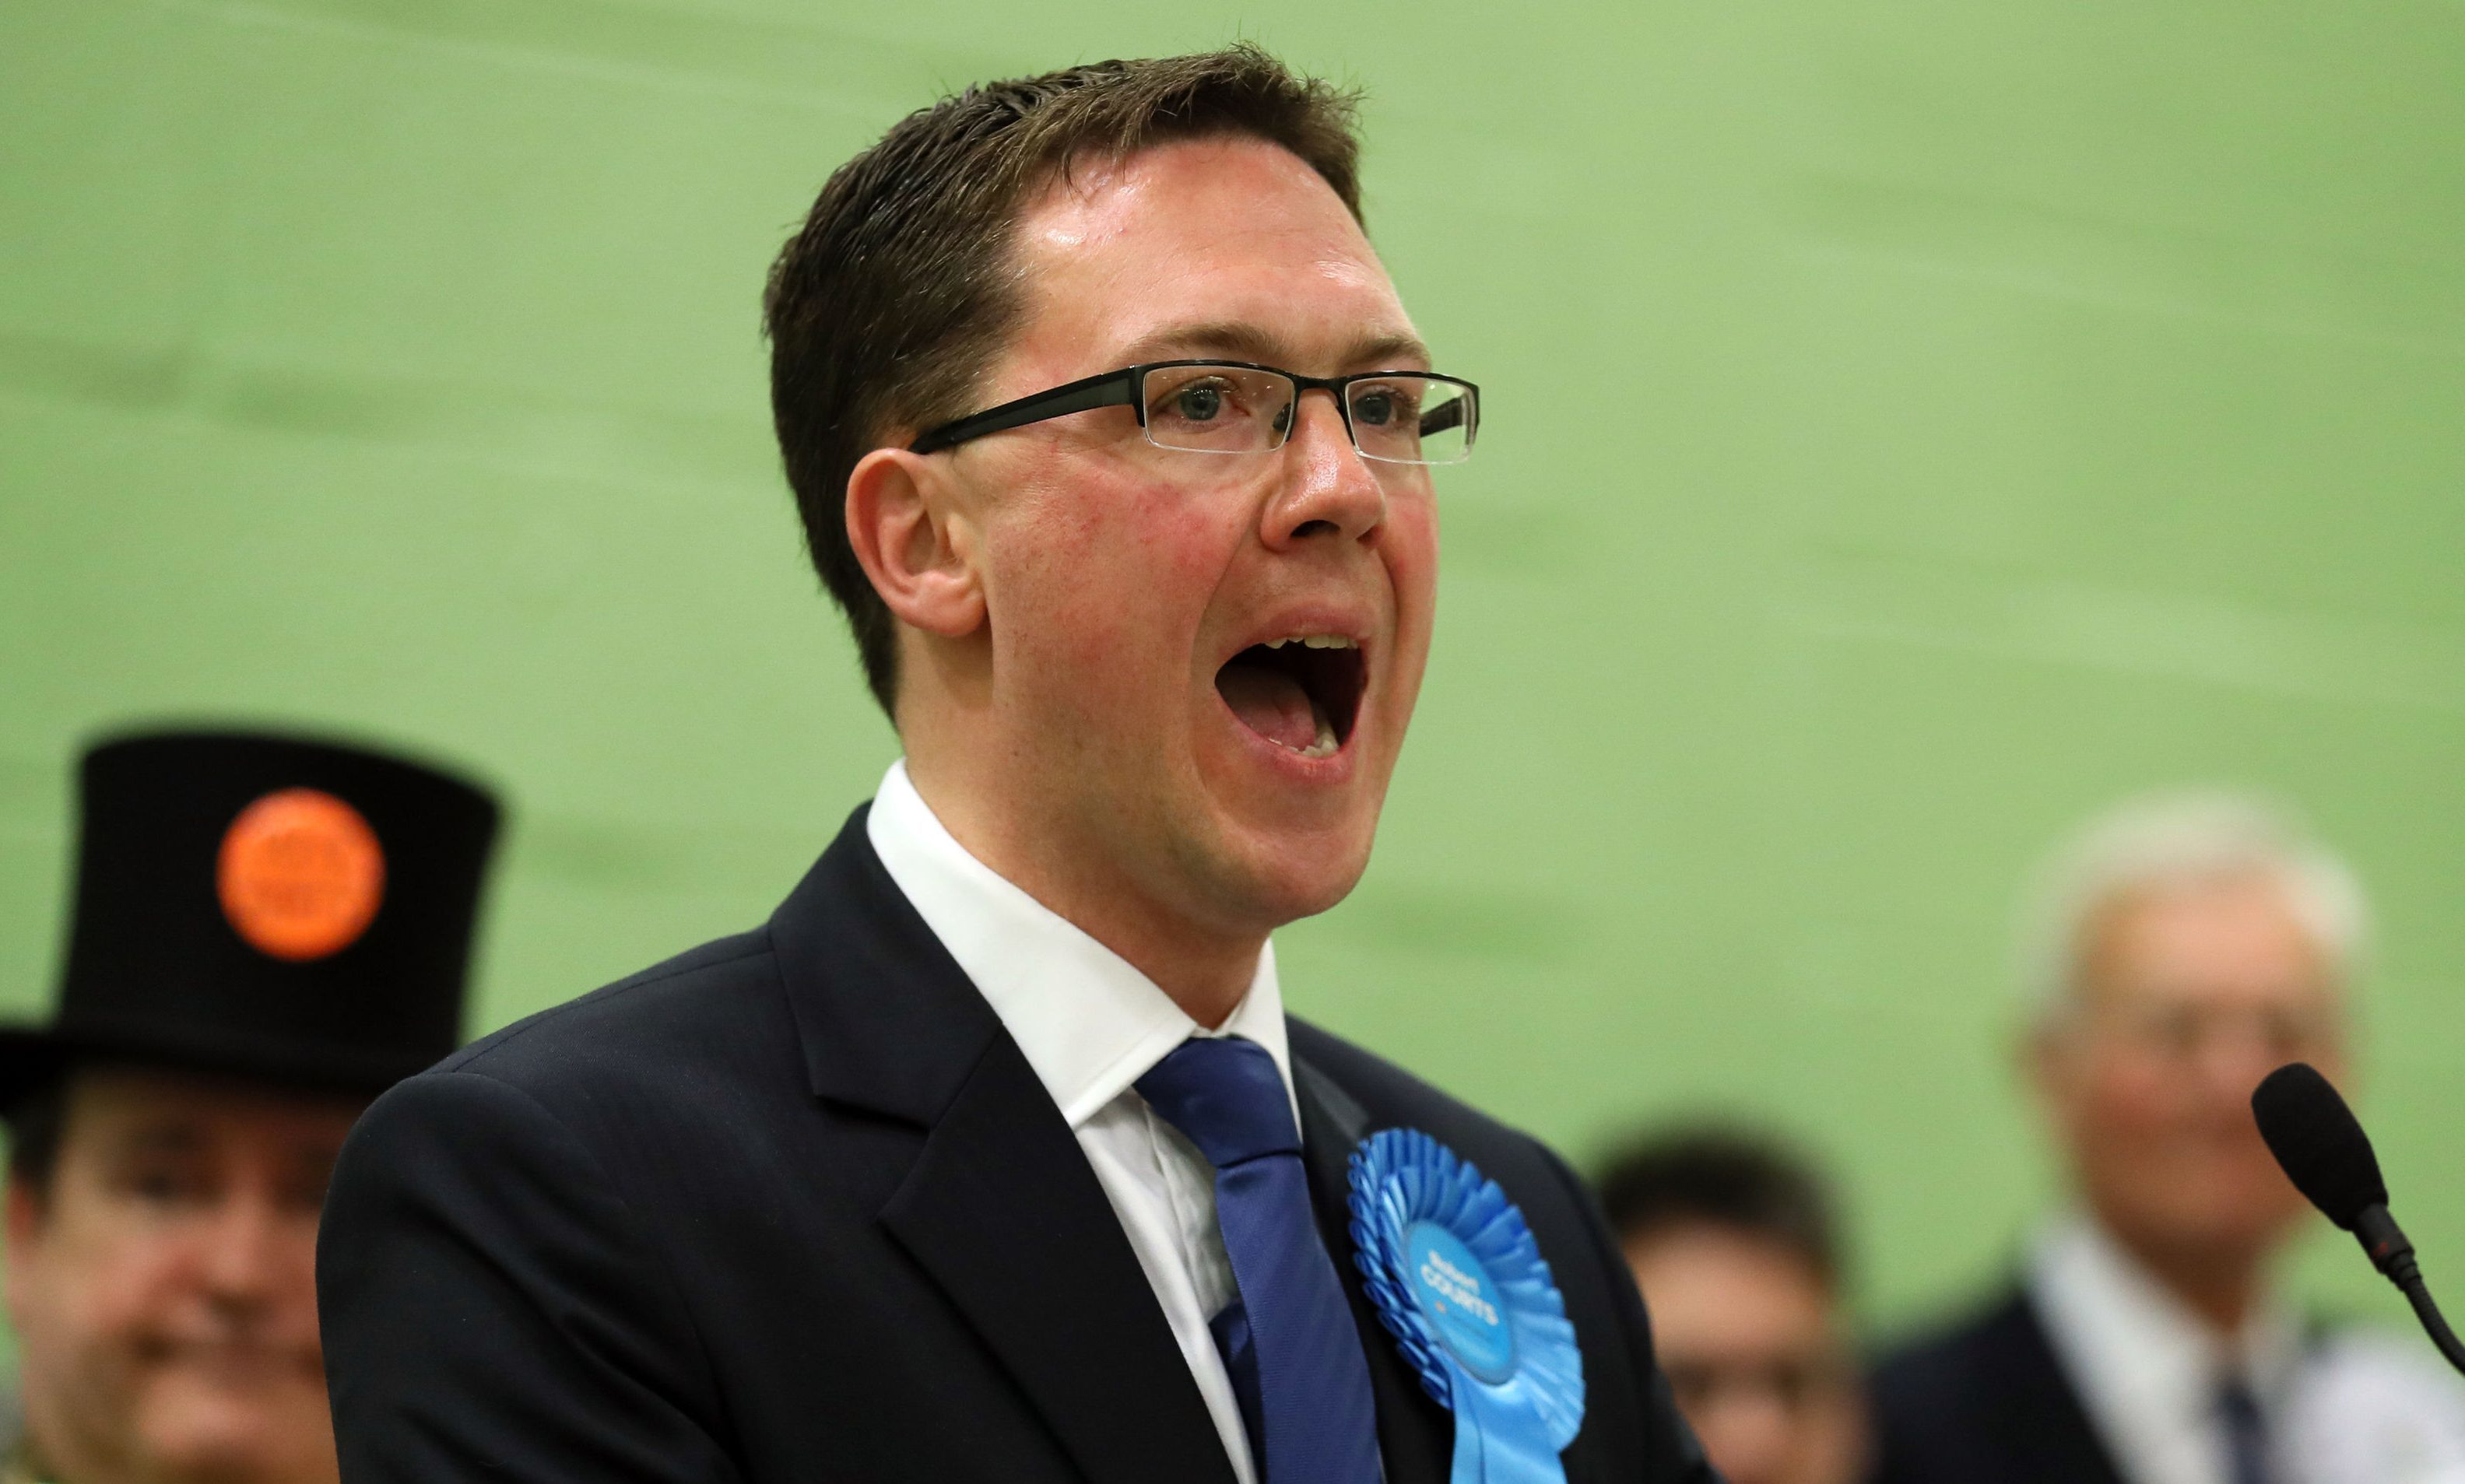 Robert Courts speaks after winning the Witney by-election.